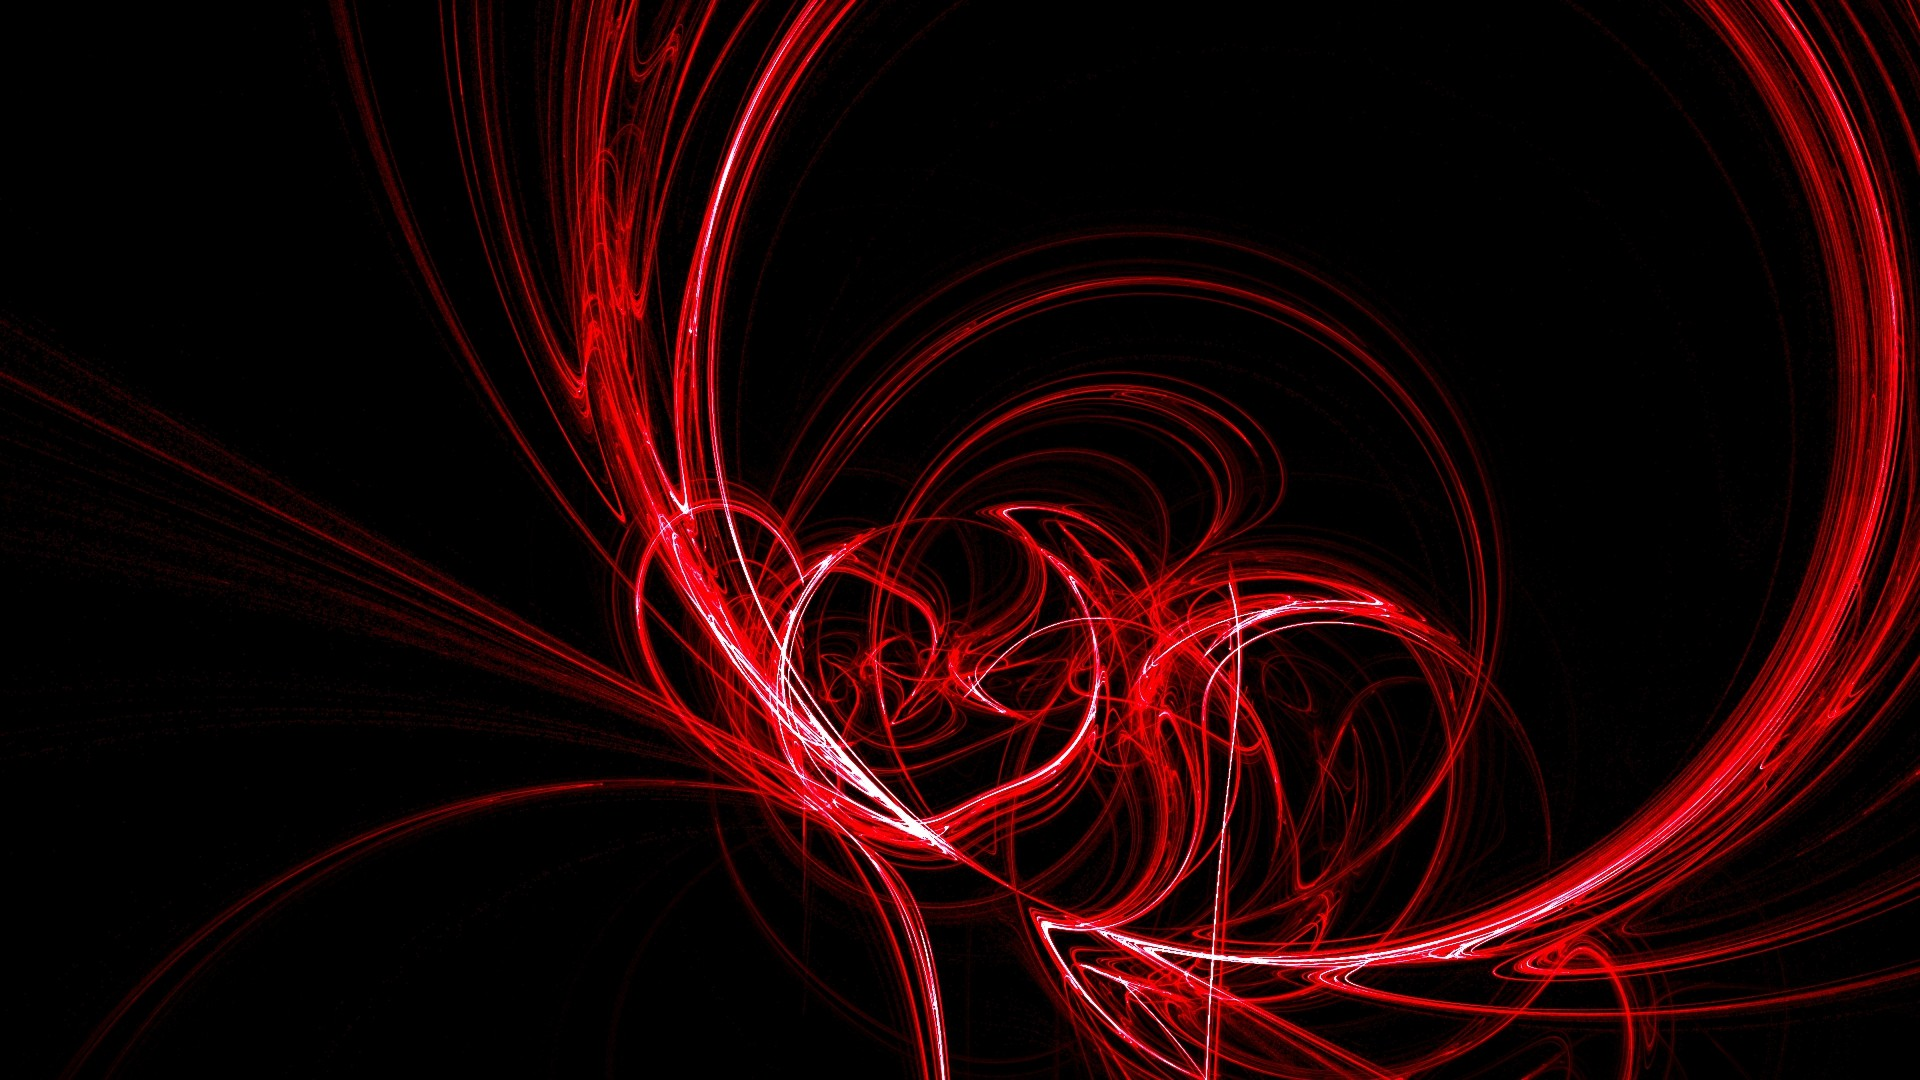 Cool Dark Red Abstract Hd Wallpaper 1920x1080px